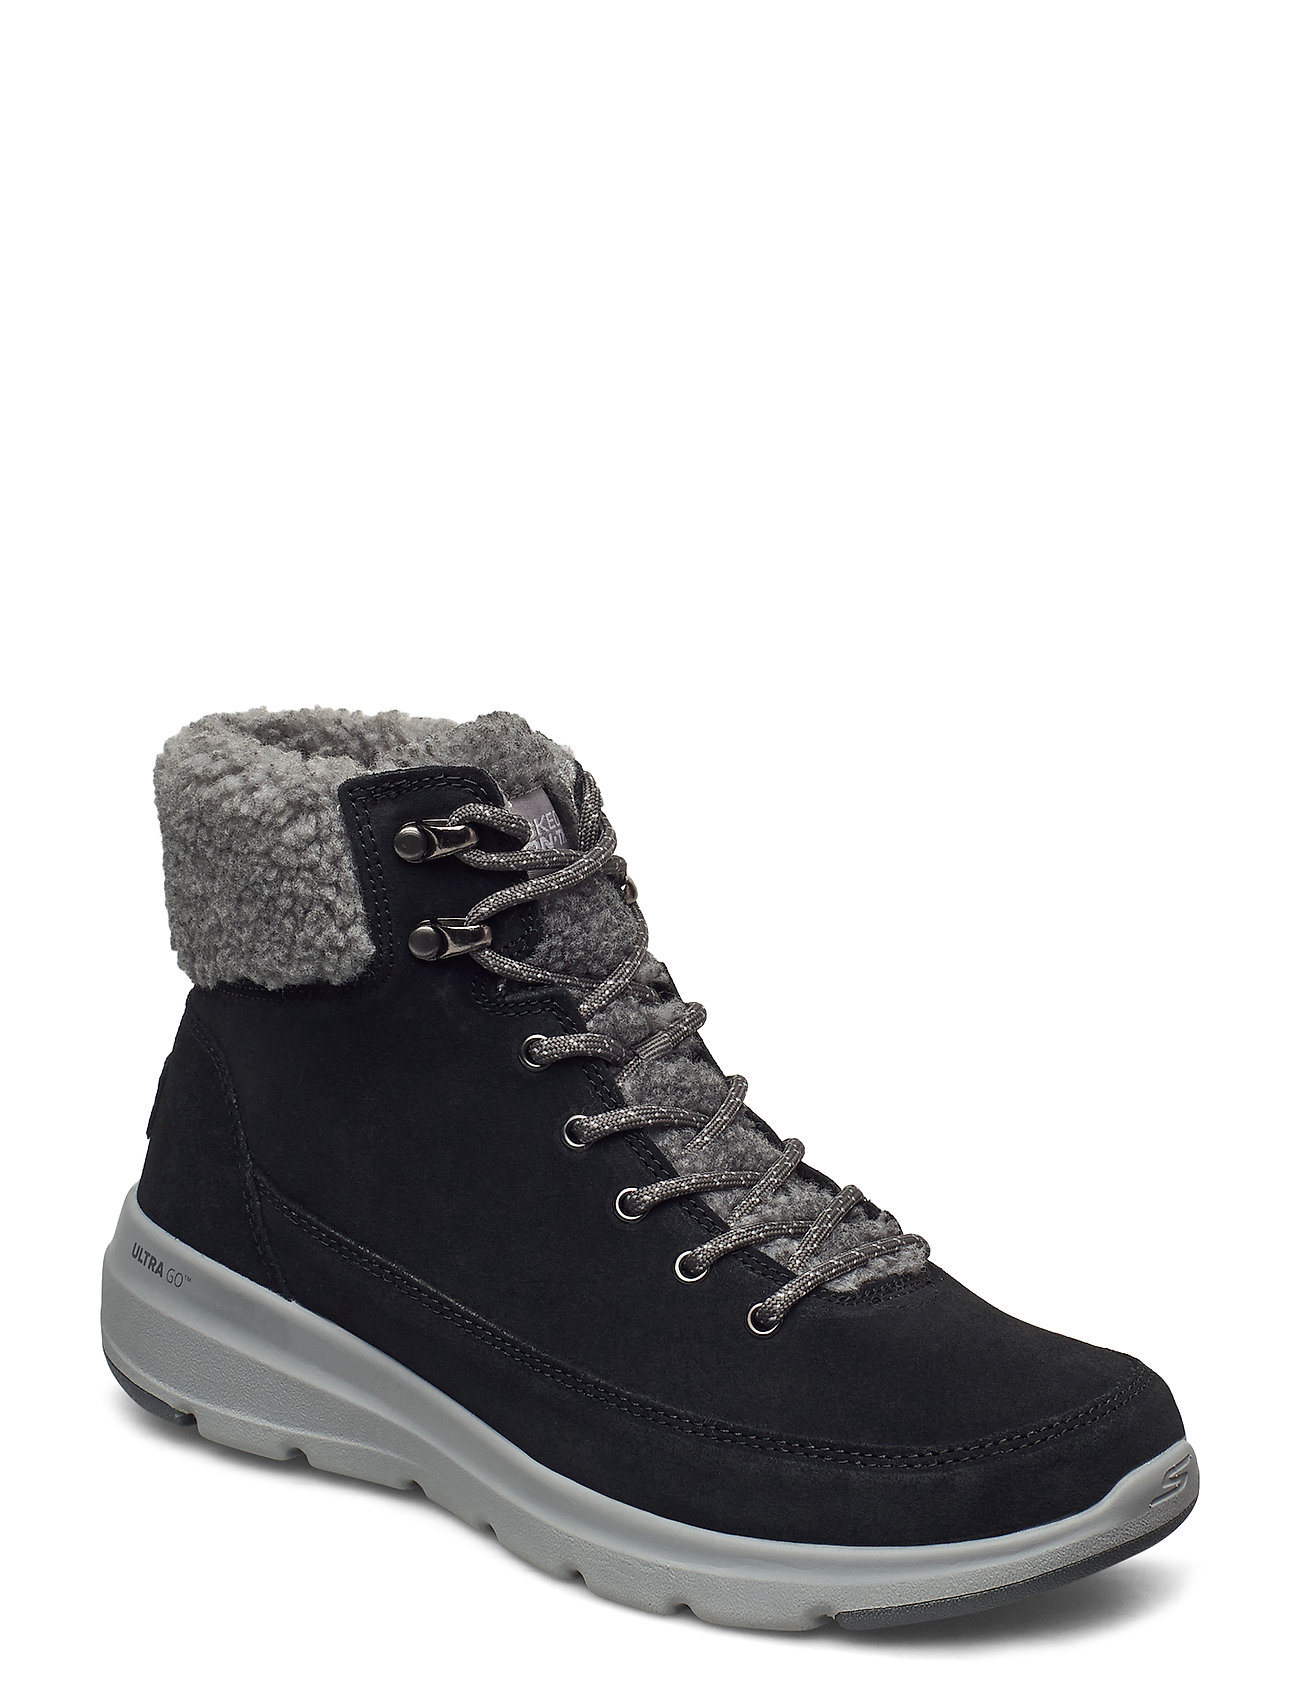 Image of Womens On The Go Glacial Ultra - Woodlands Shoes Boots Ankle Boots Ankle Boot - Flat Sort Skechers (3443246539)